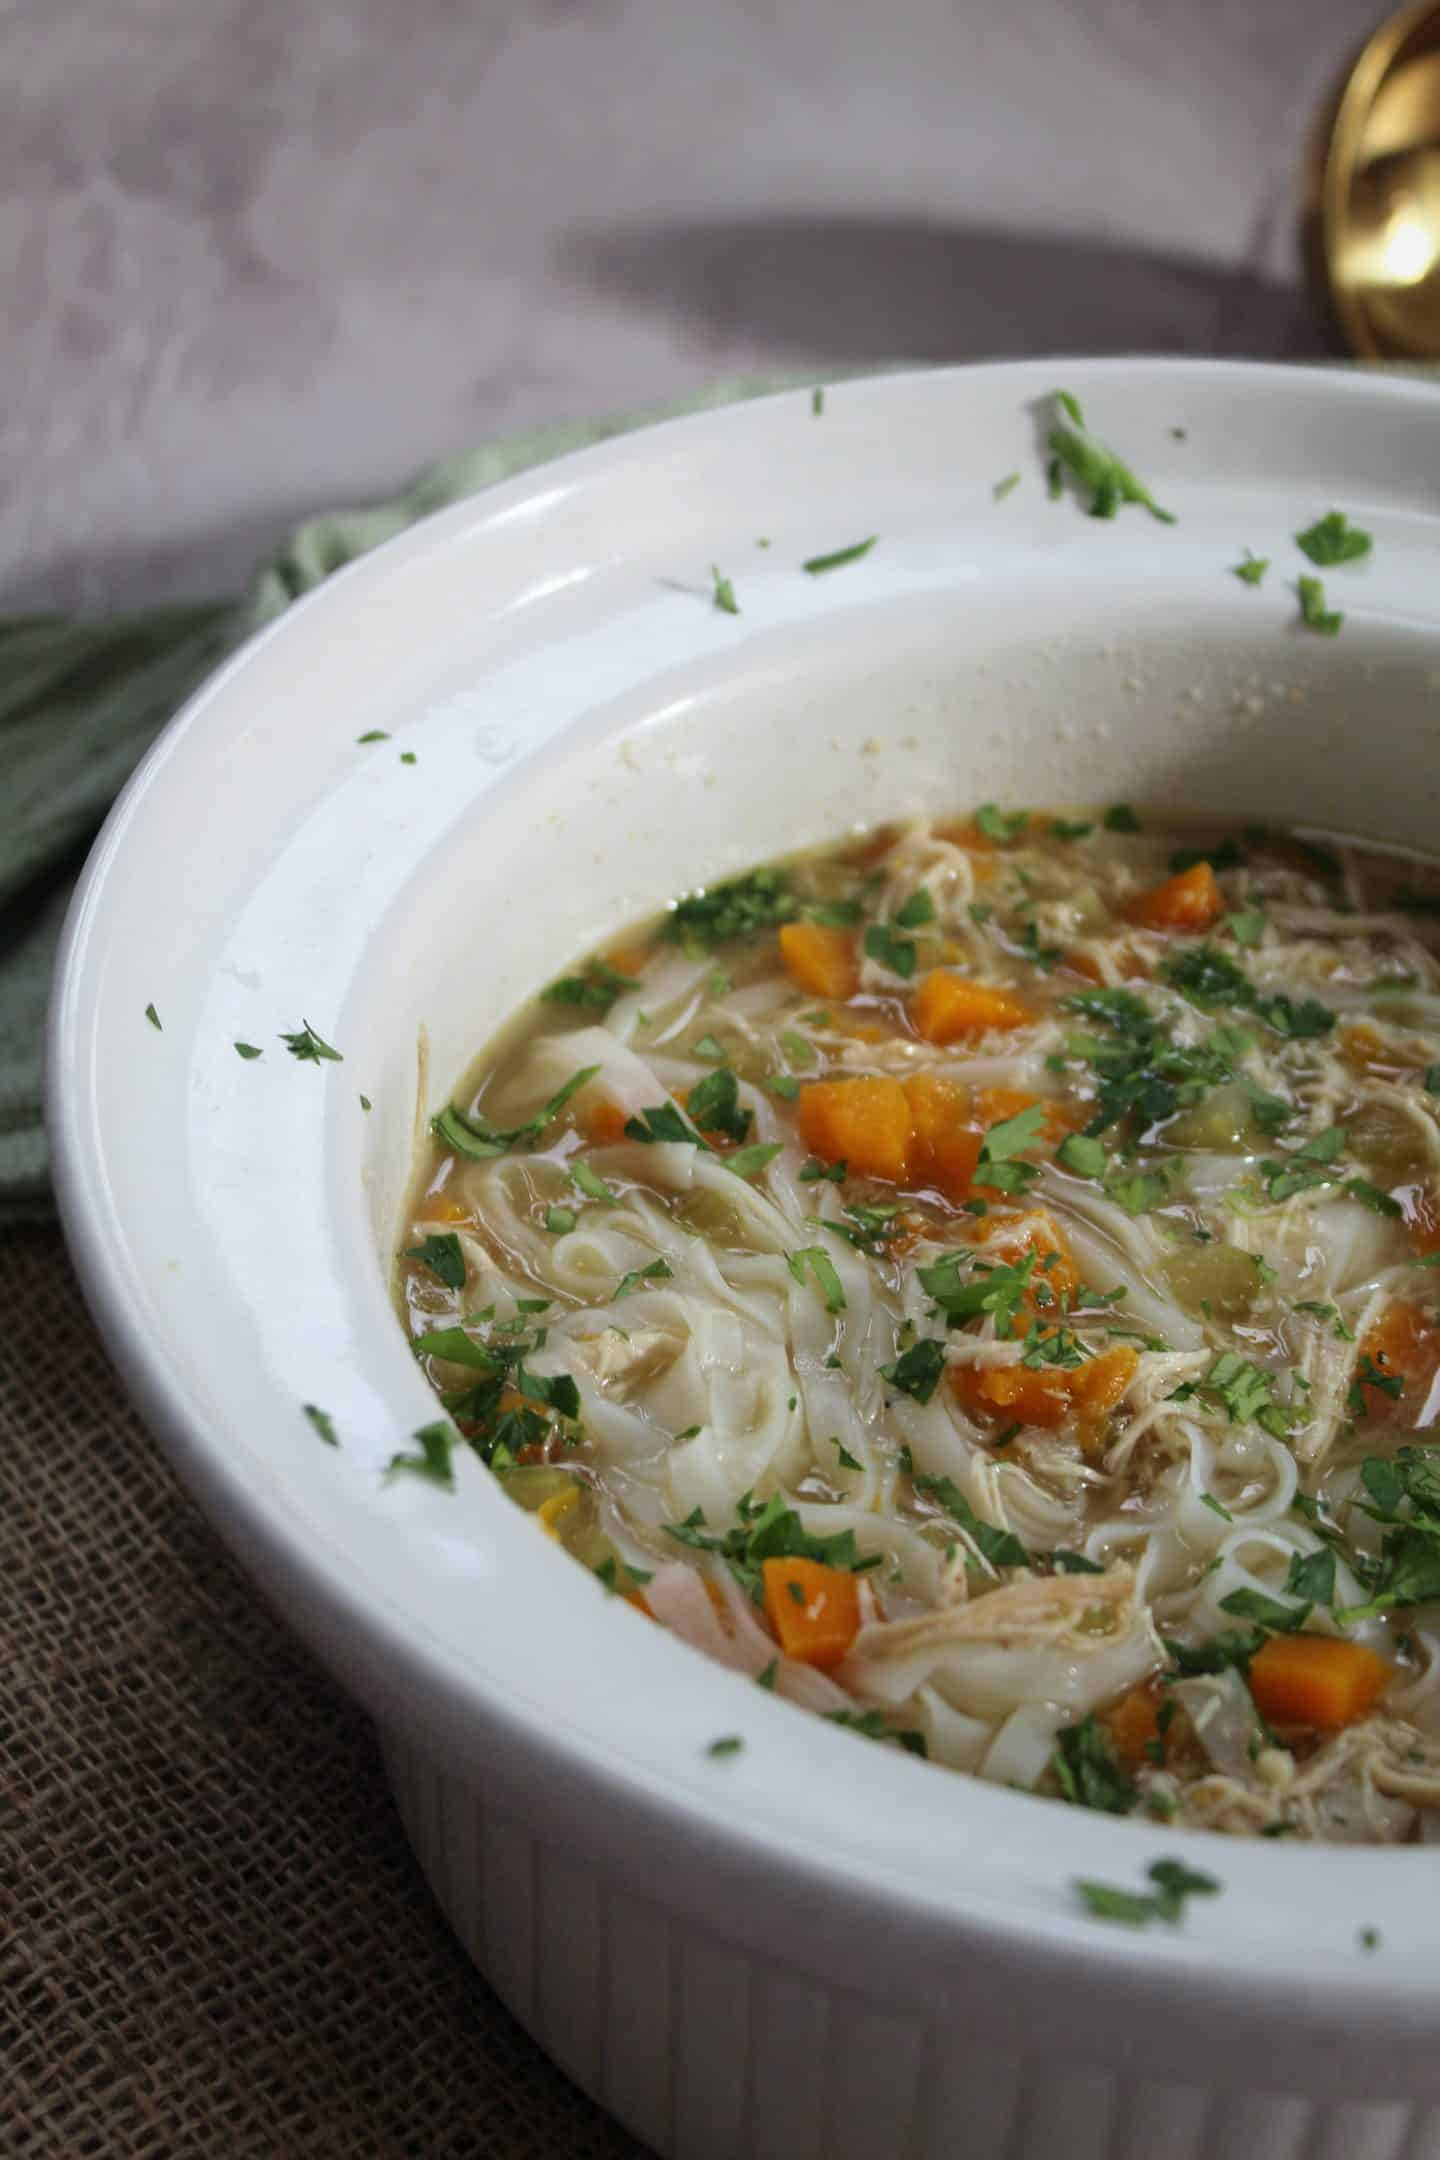 GLUTEN FREE SLOW COOKER CHICKEN NOODLE SOUP RECIPE